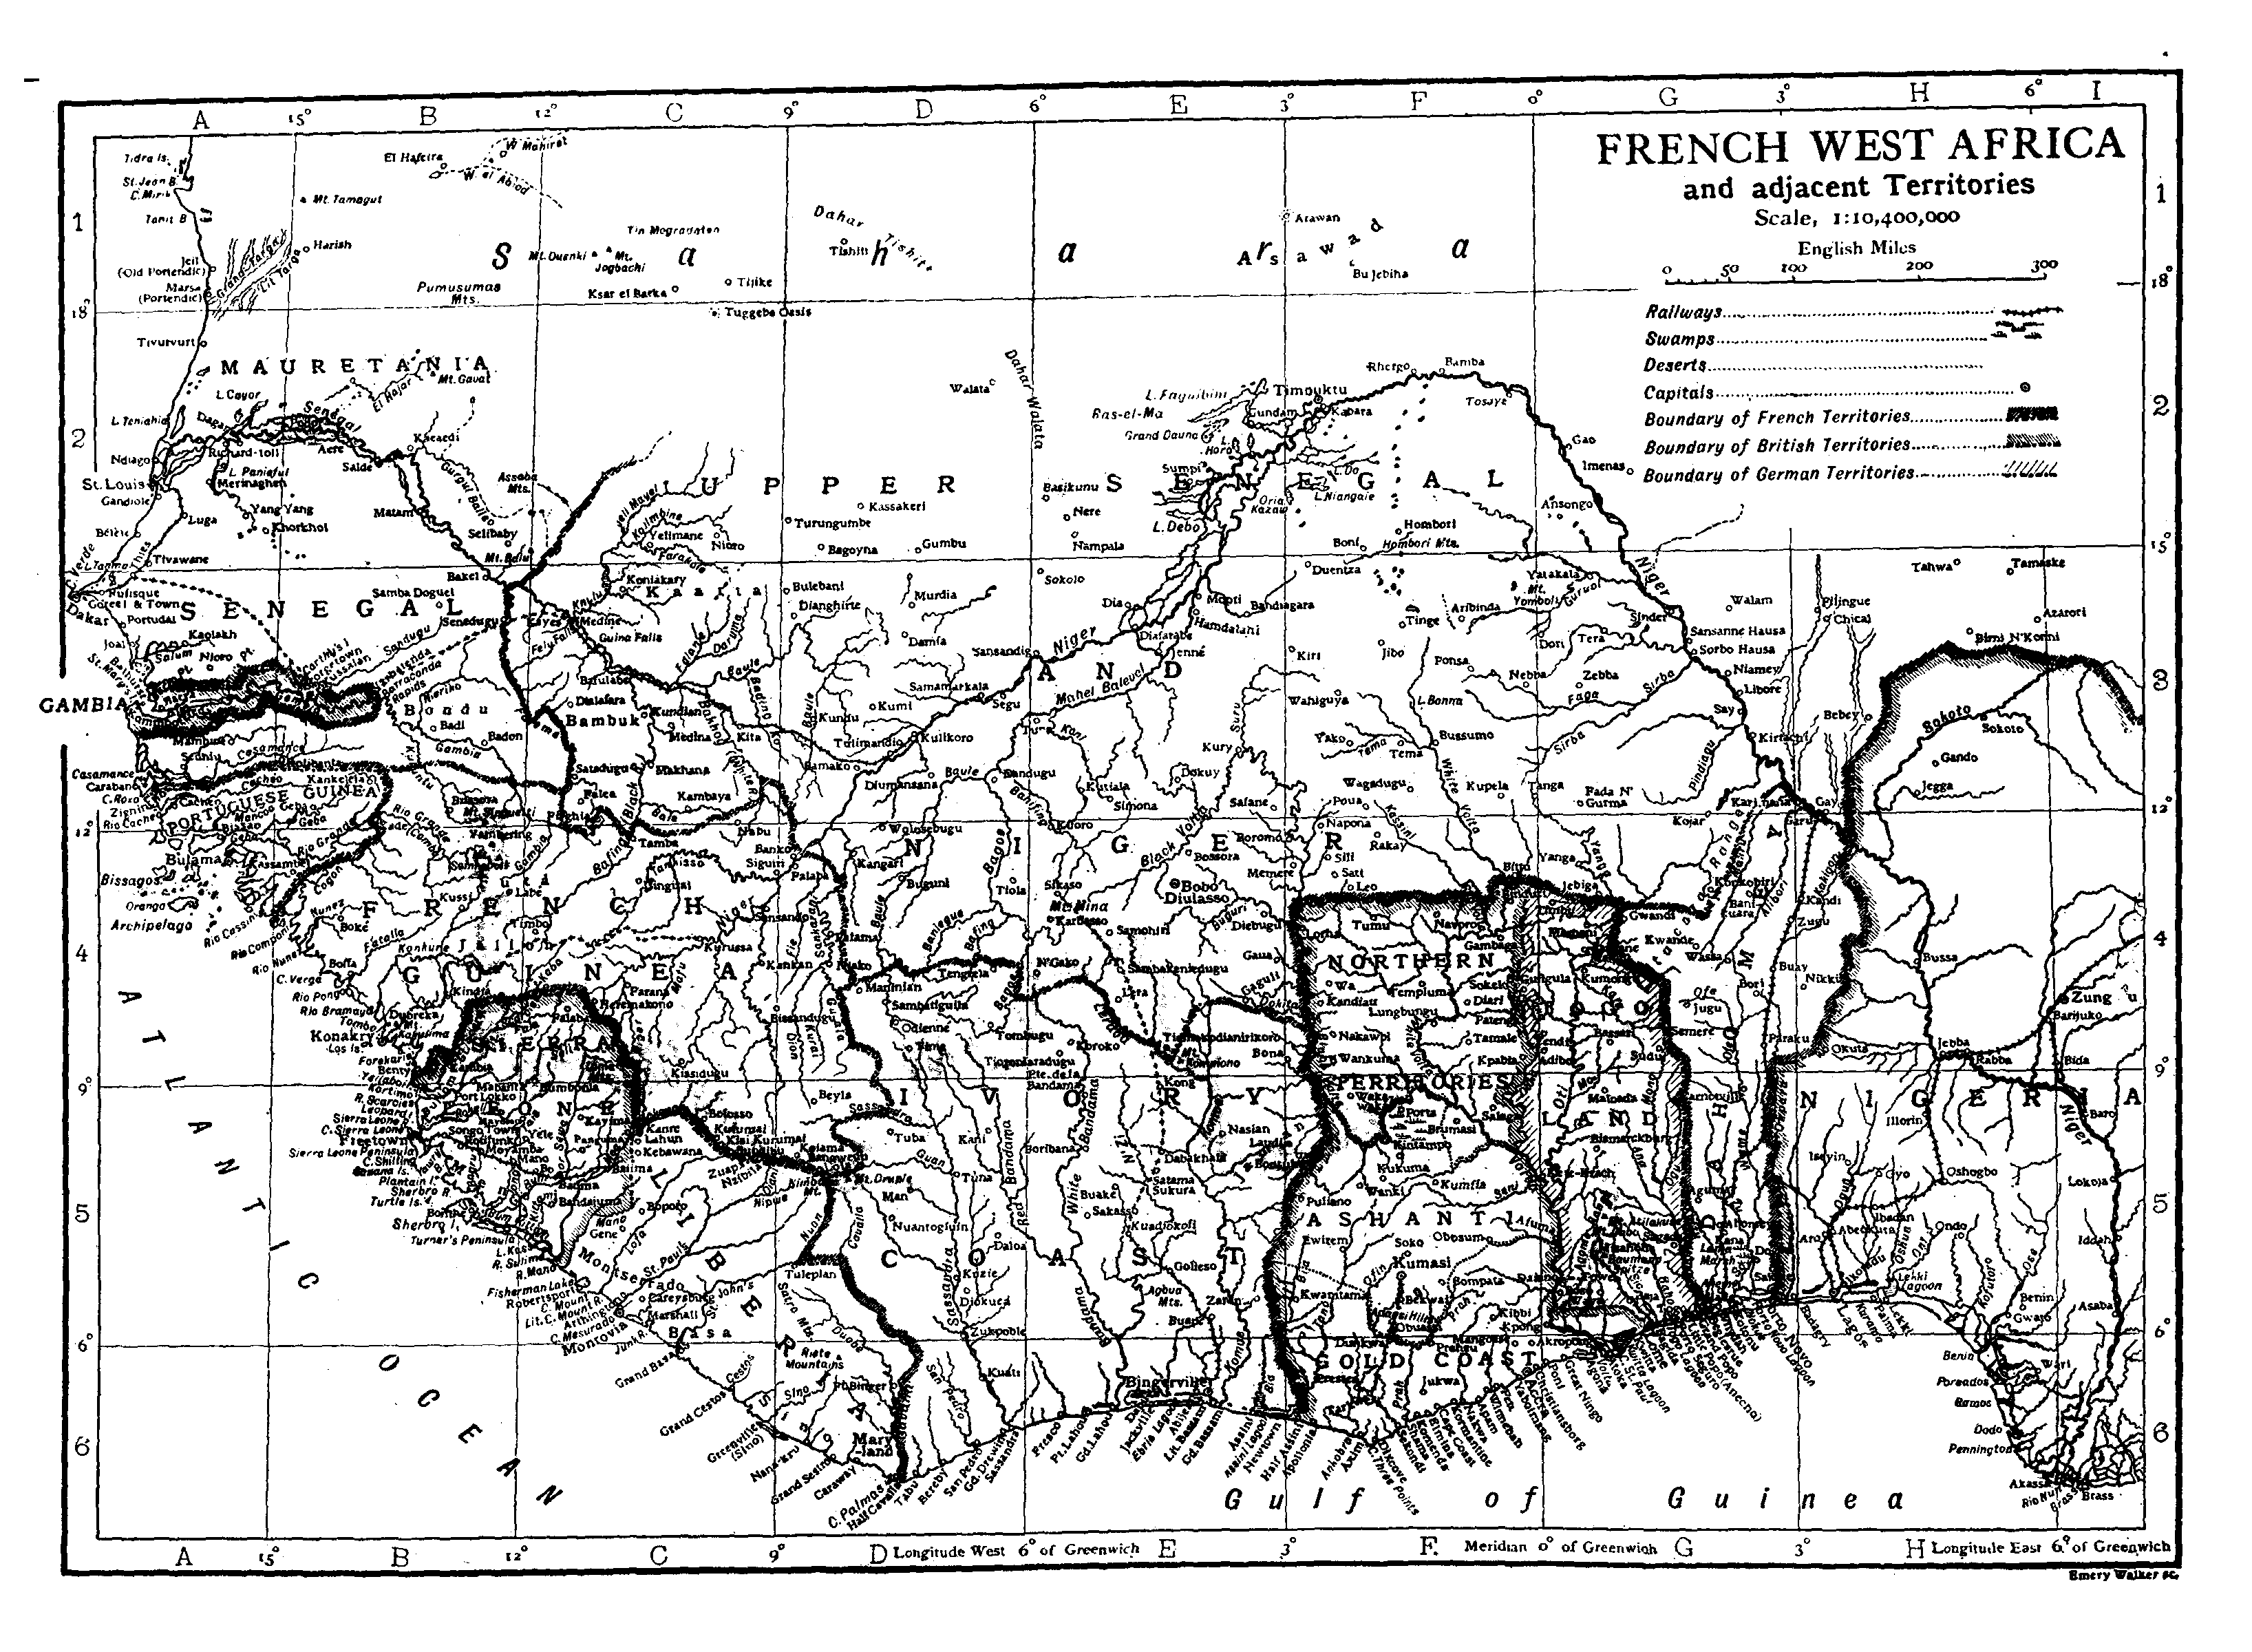 A map of French West Africa showing Upper Senegal and Niger circa 1911 from the Encyclopædia Britannica